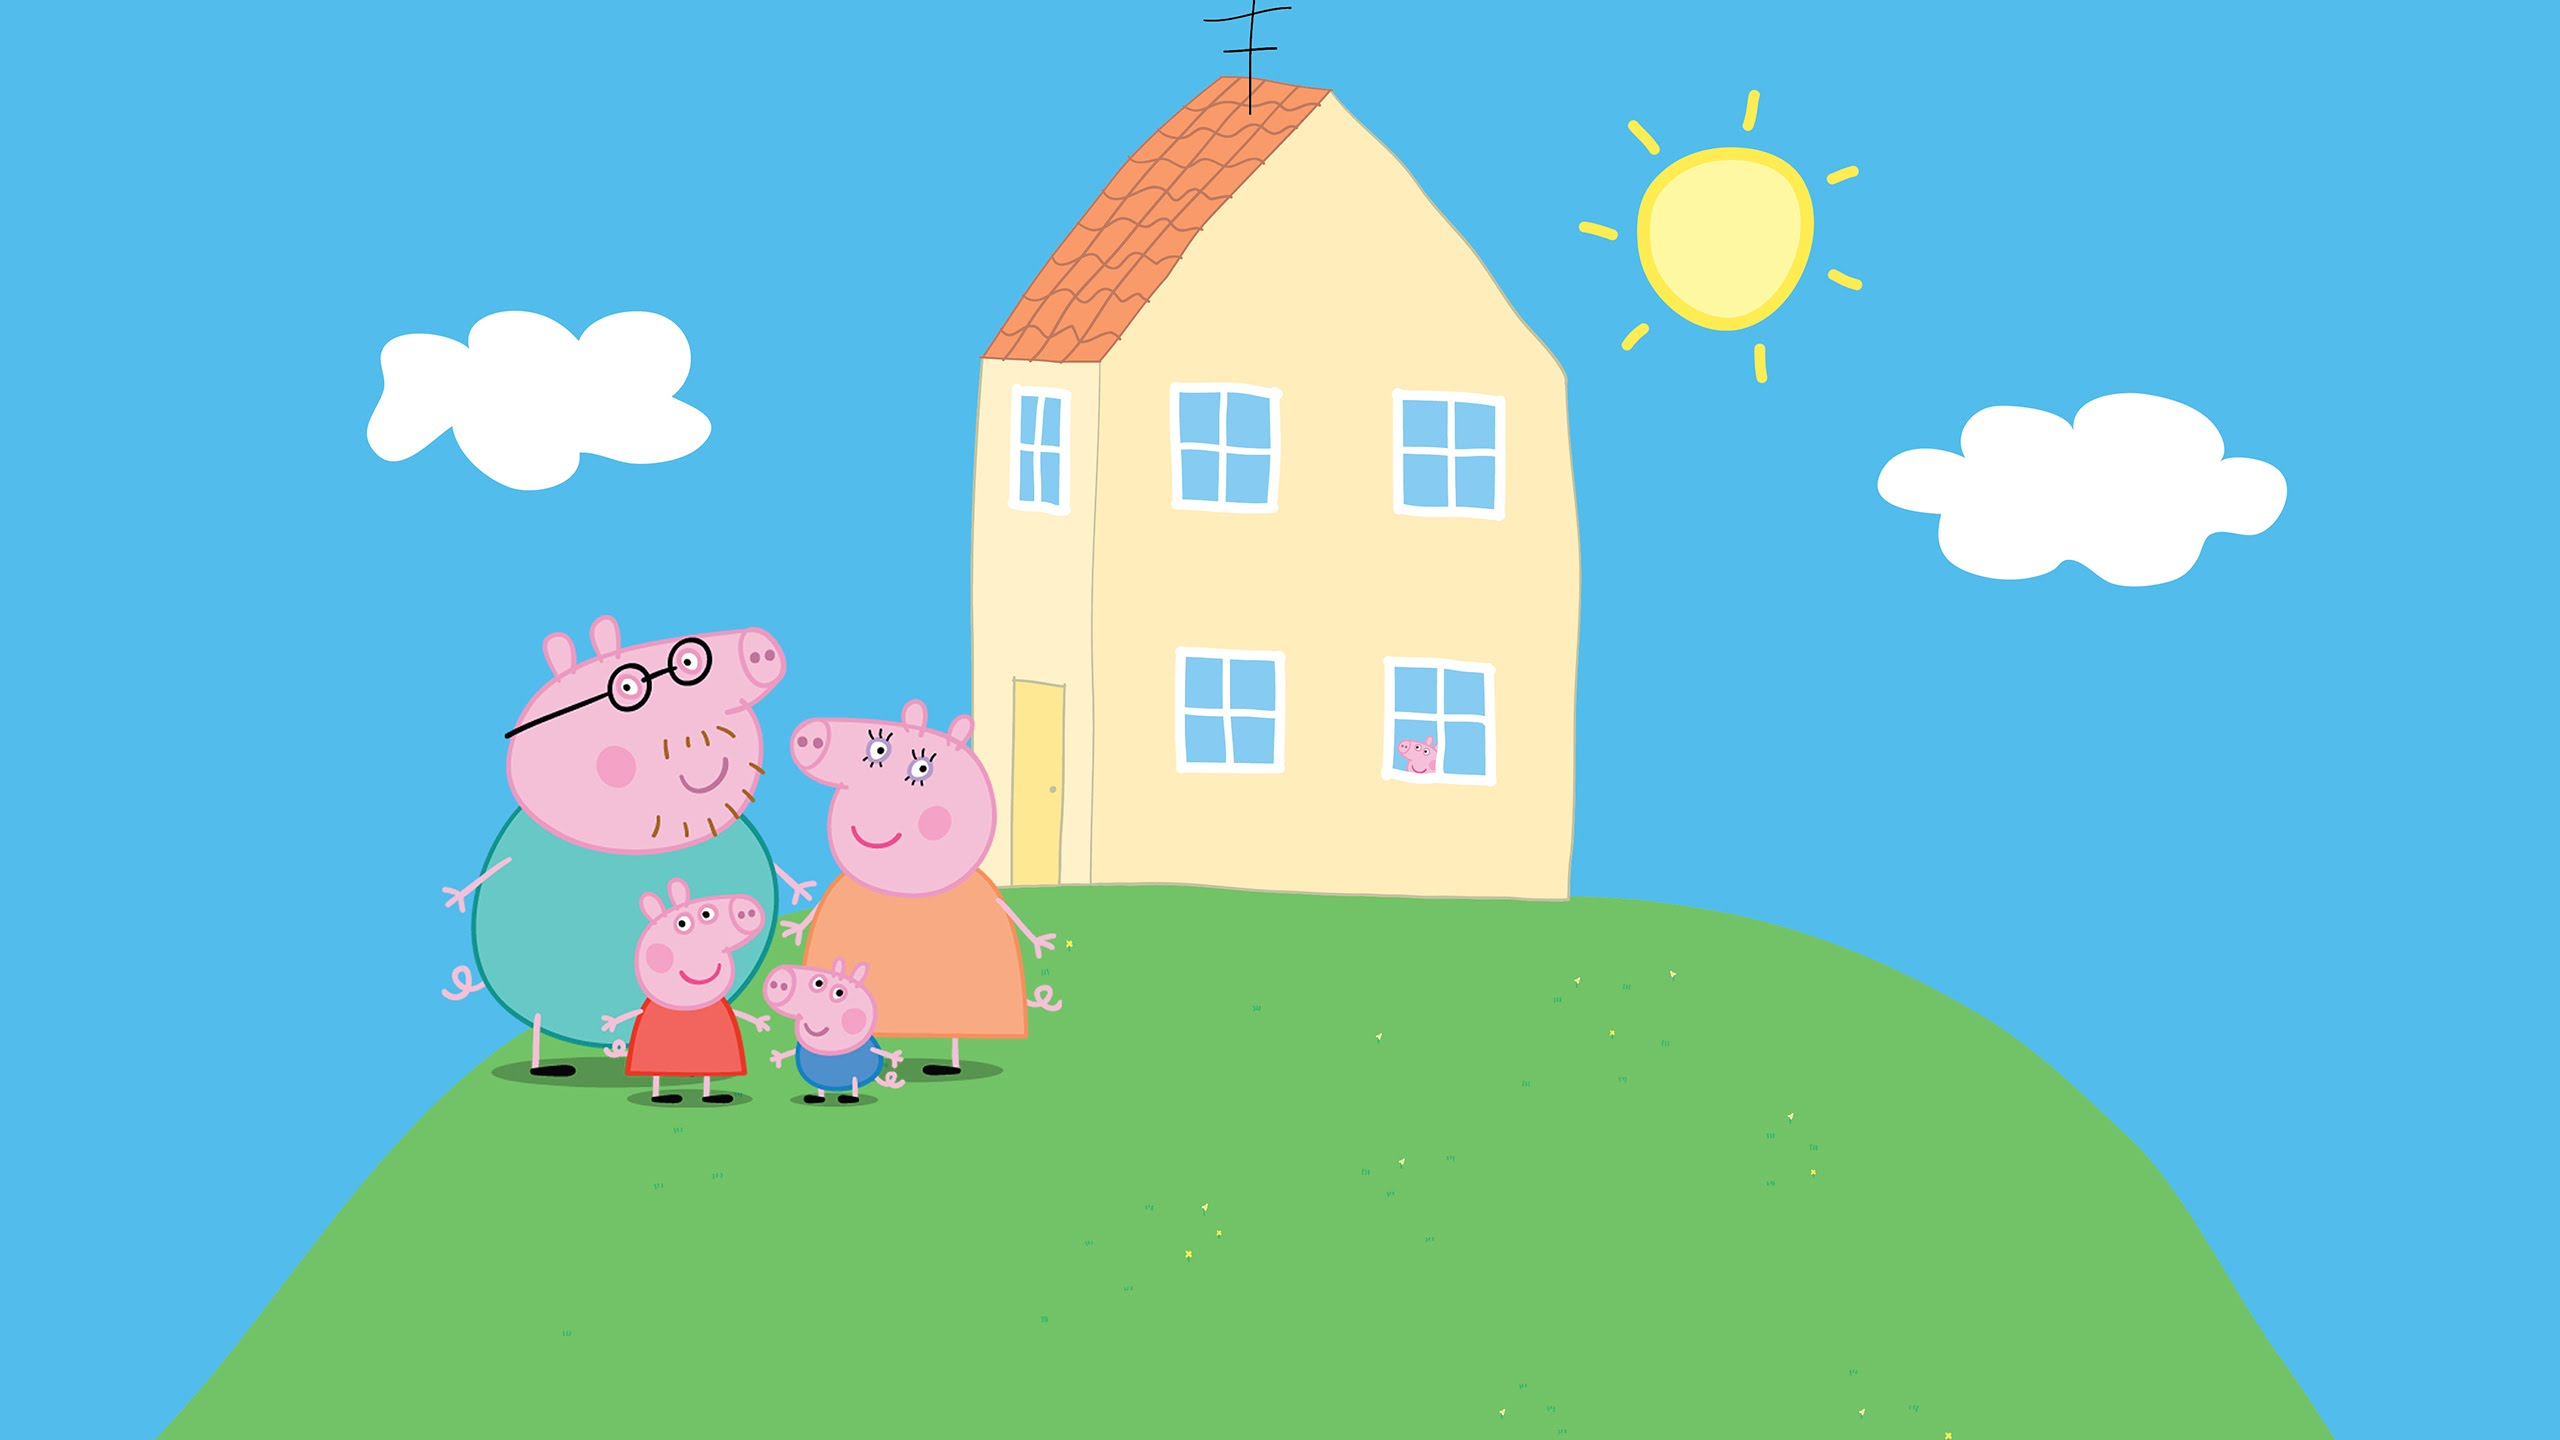 im65 Peppa Pig HD Wallpaper 2560x1440 px   Picseriocom